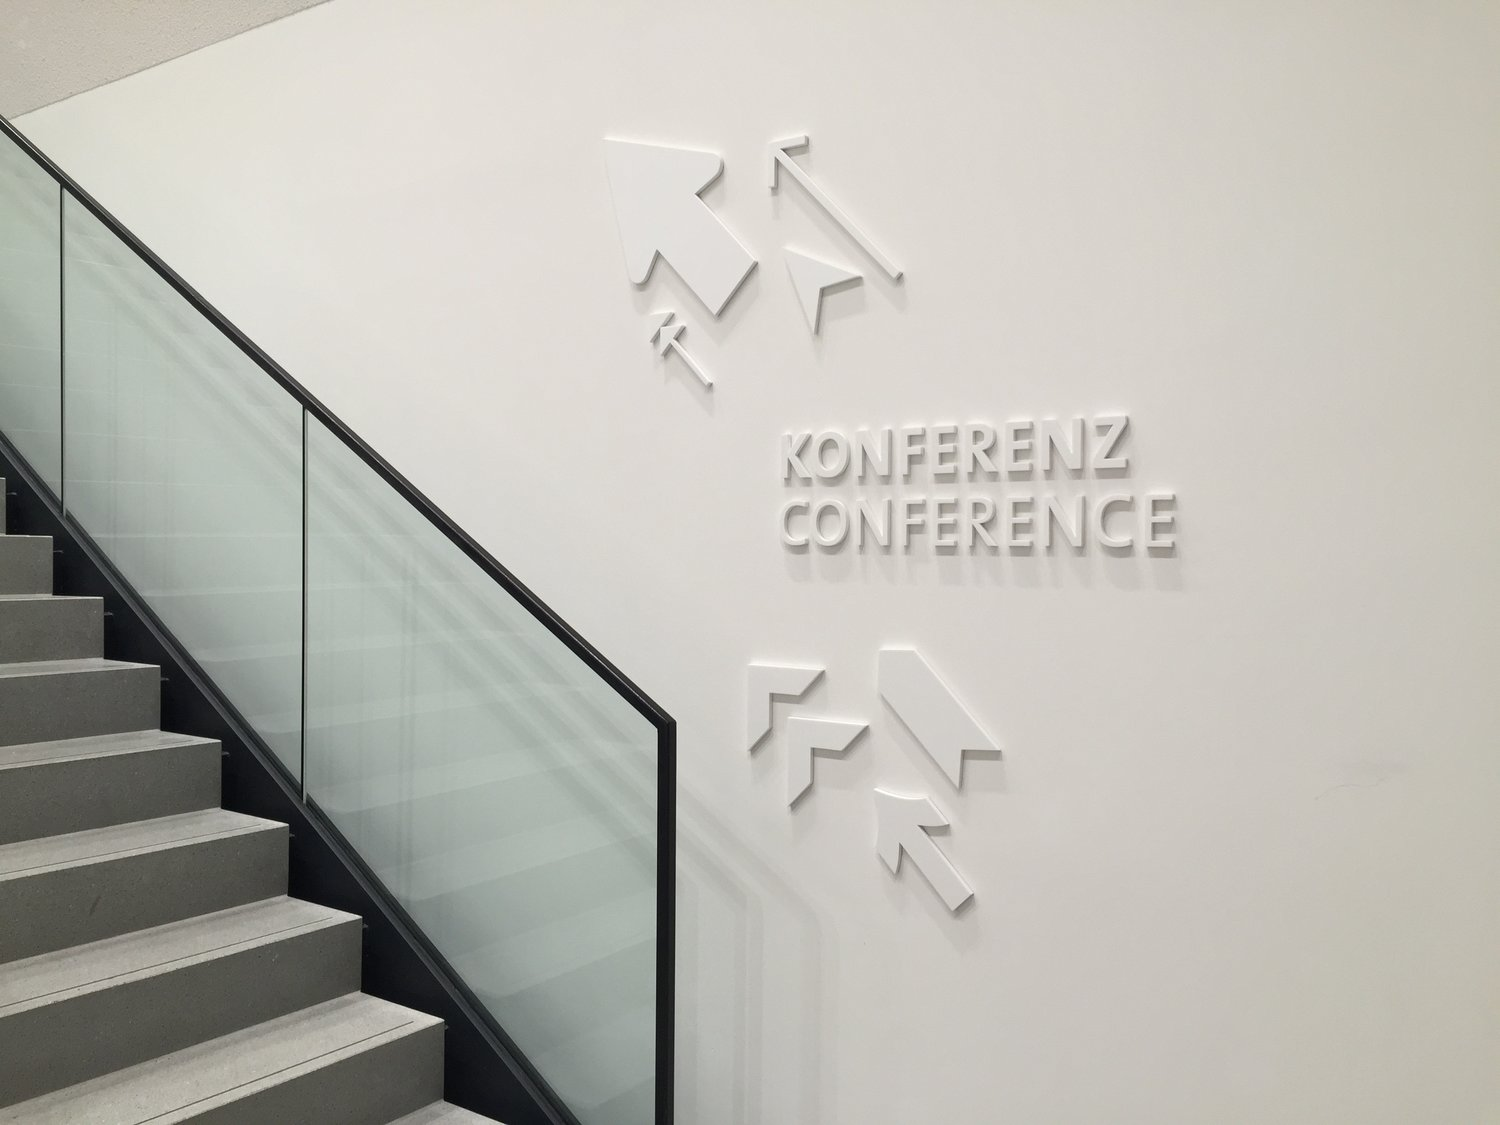 hzw sign consulting GmbH